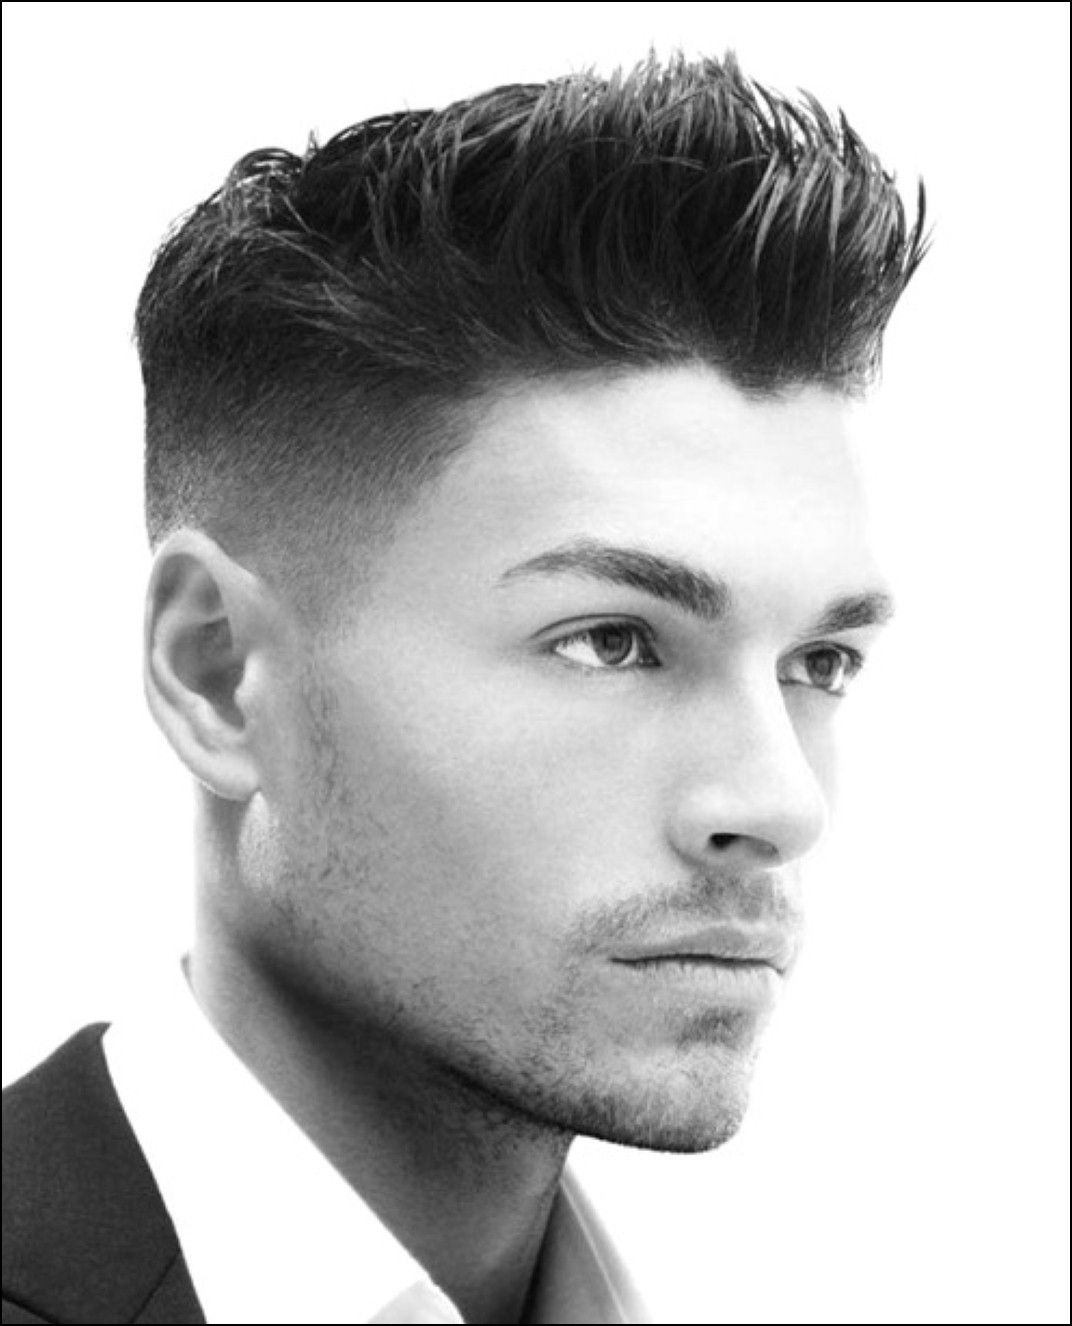 Haircut for men images good haircuts for guys with straight hair  hair  pinterest